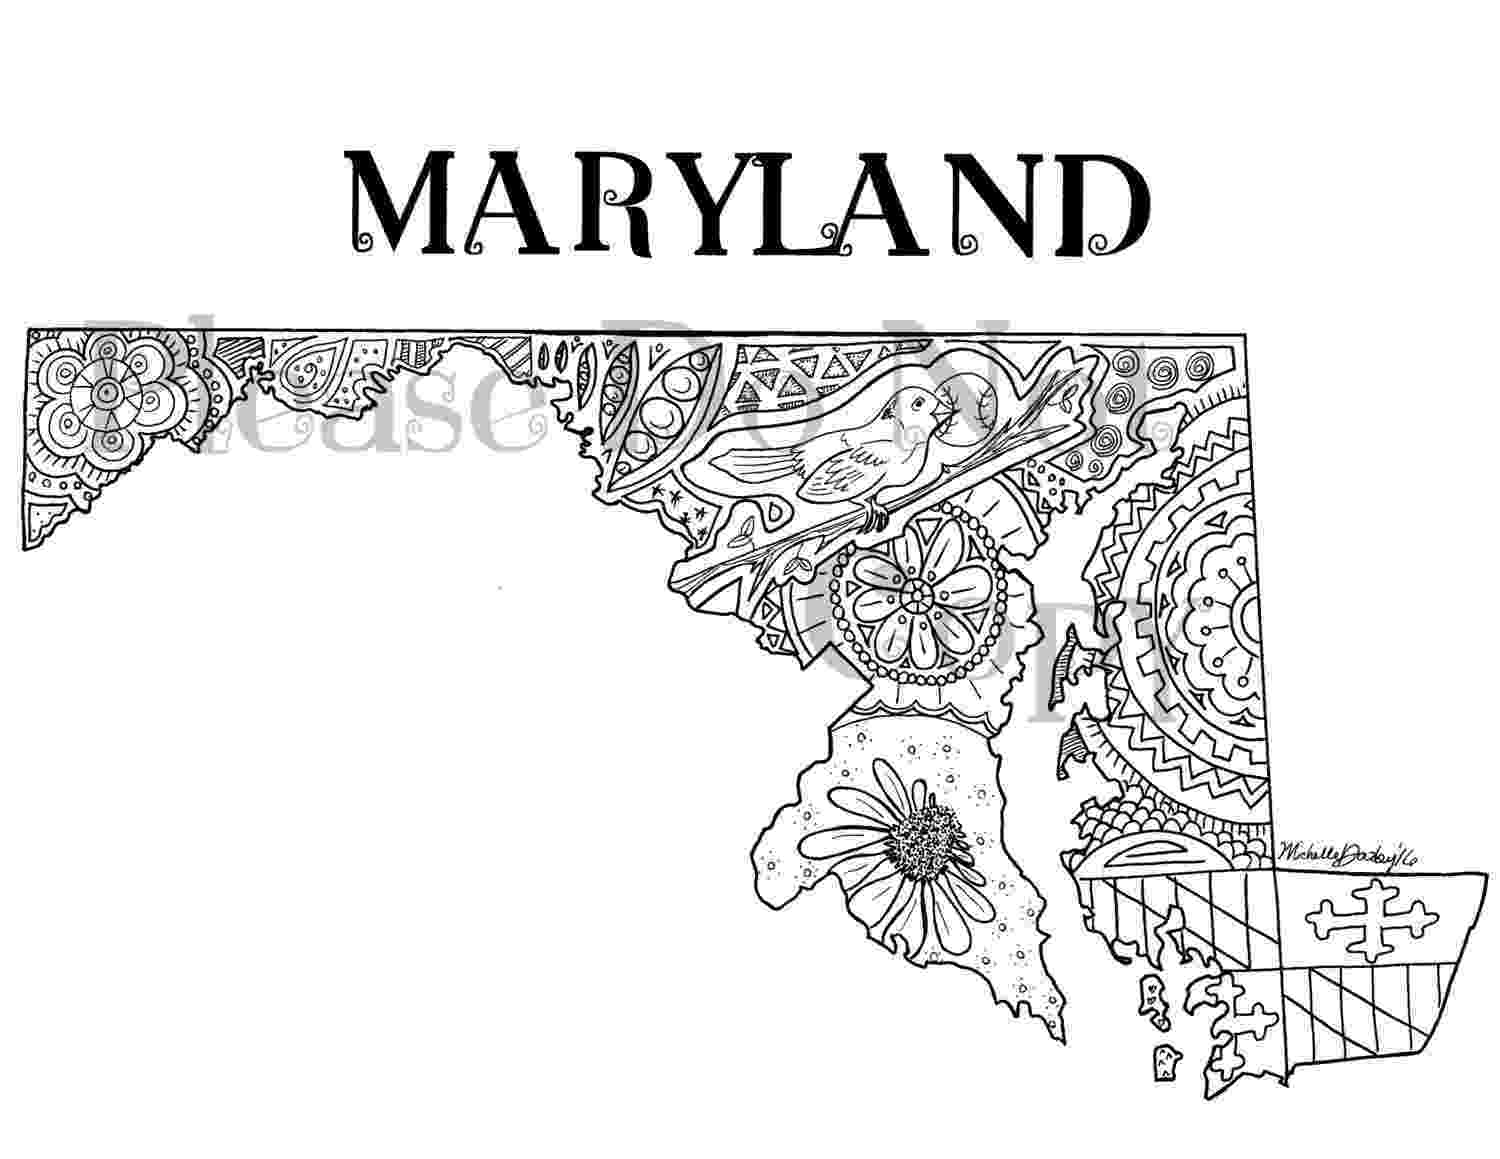 maryland state flag coloring page maryland state flag coloring page state flag page coloring maryland